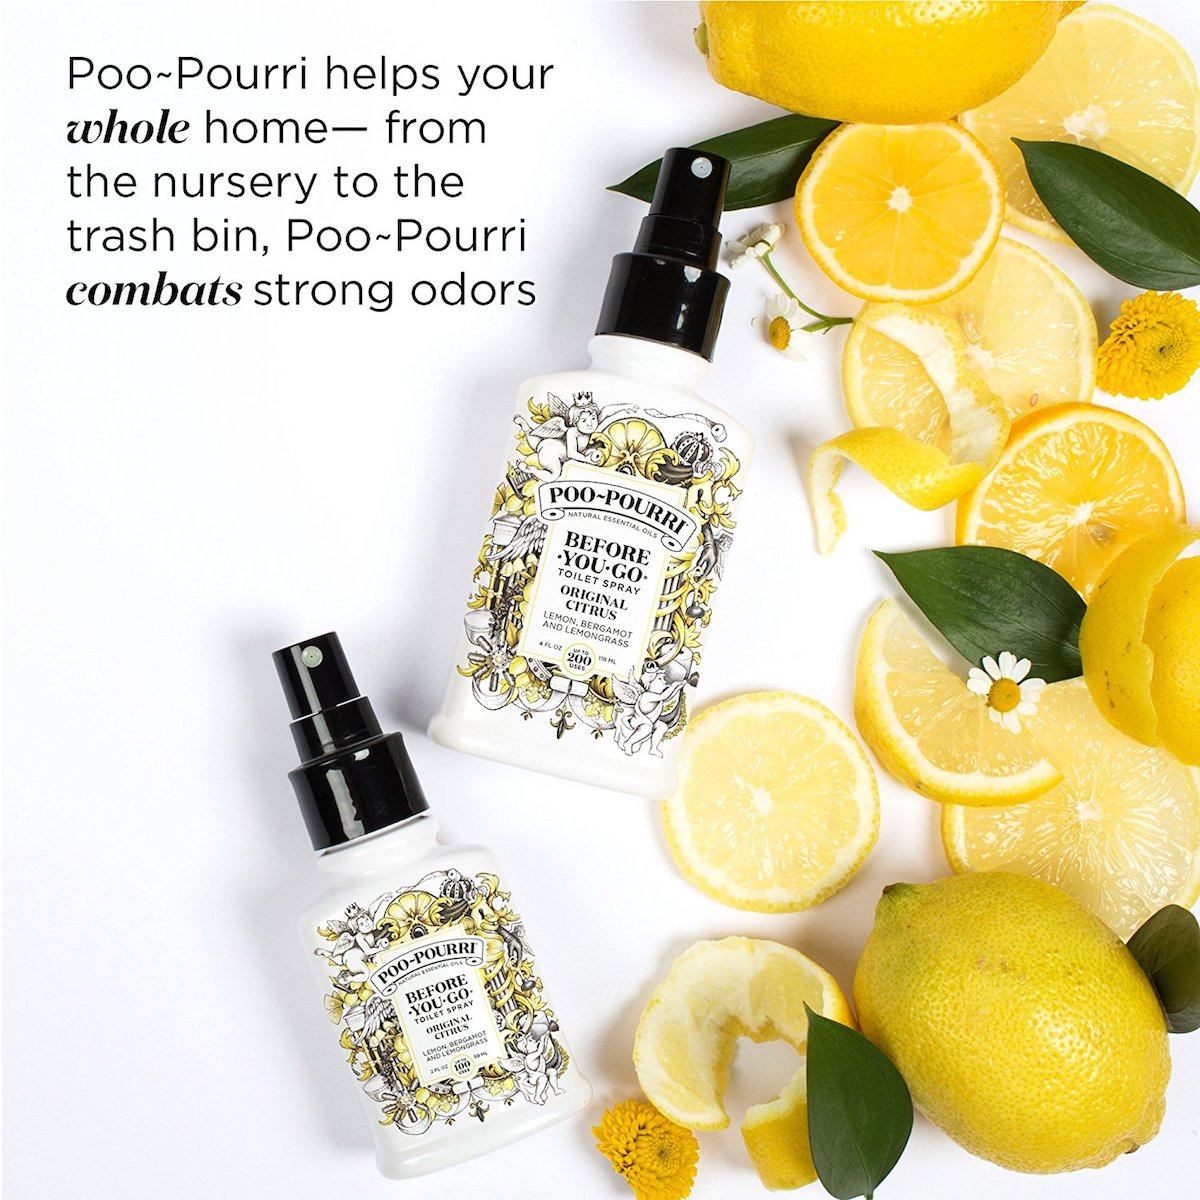 Amazon Essentials Poo-Pourri Spray in Citrus